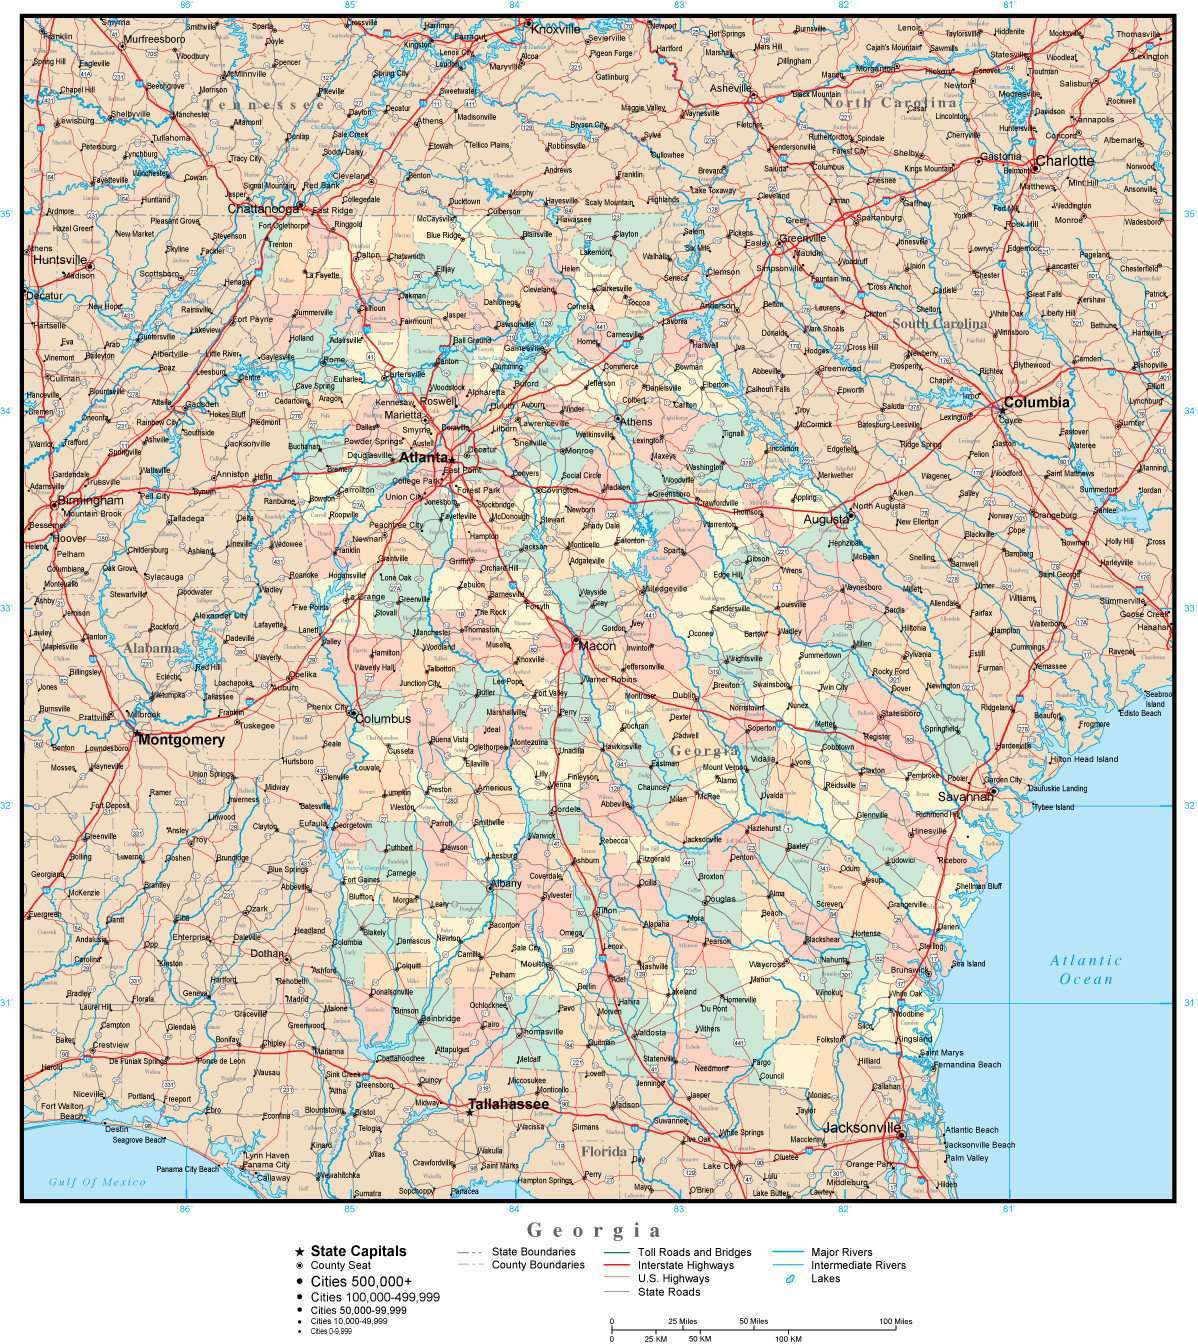 Georgia Map Of Cities And Counties.Georgia Map With Counties Cities County Seats Major Roads Rivers And Lakes